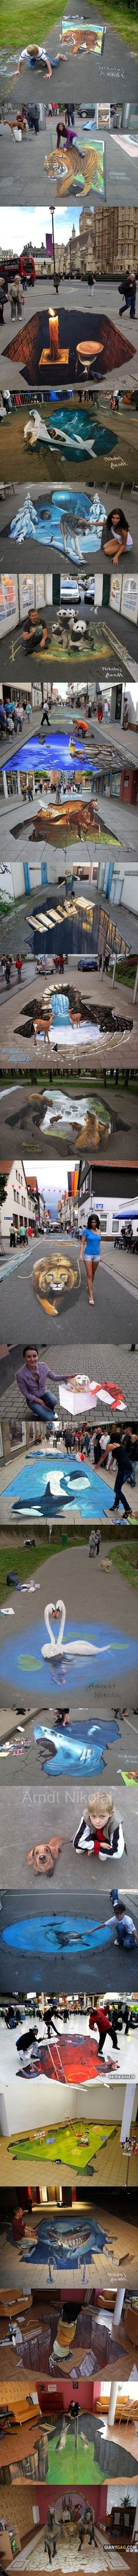 Pictures of the week, 25 images. Awesome Street Art